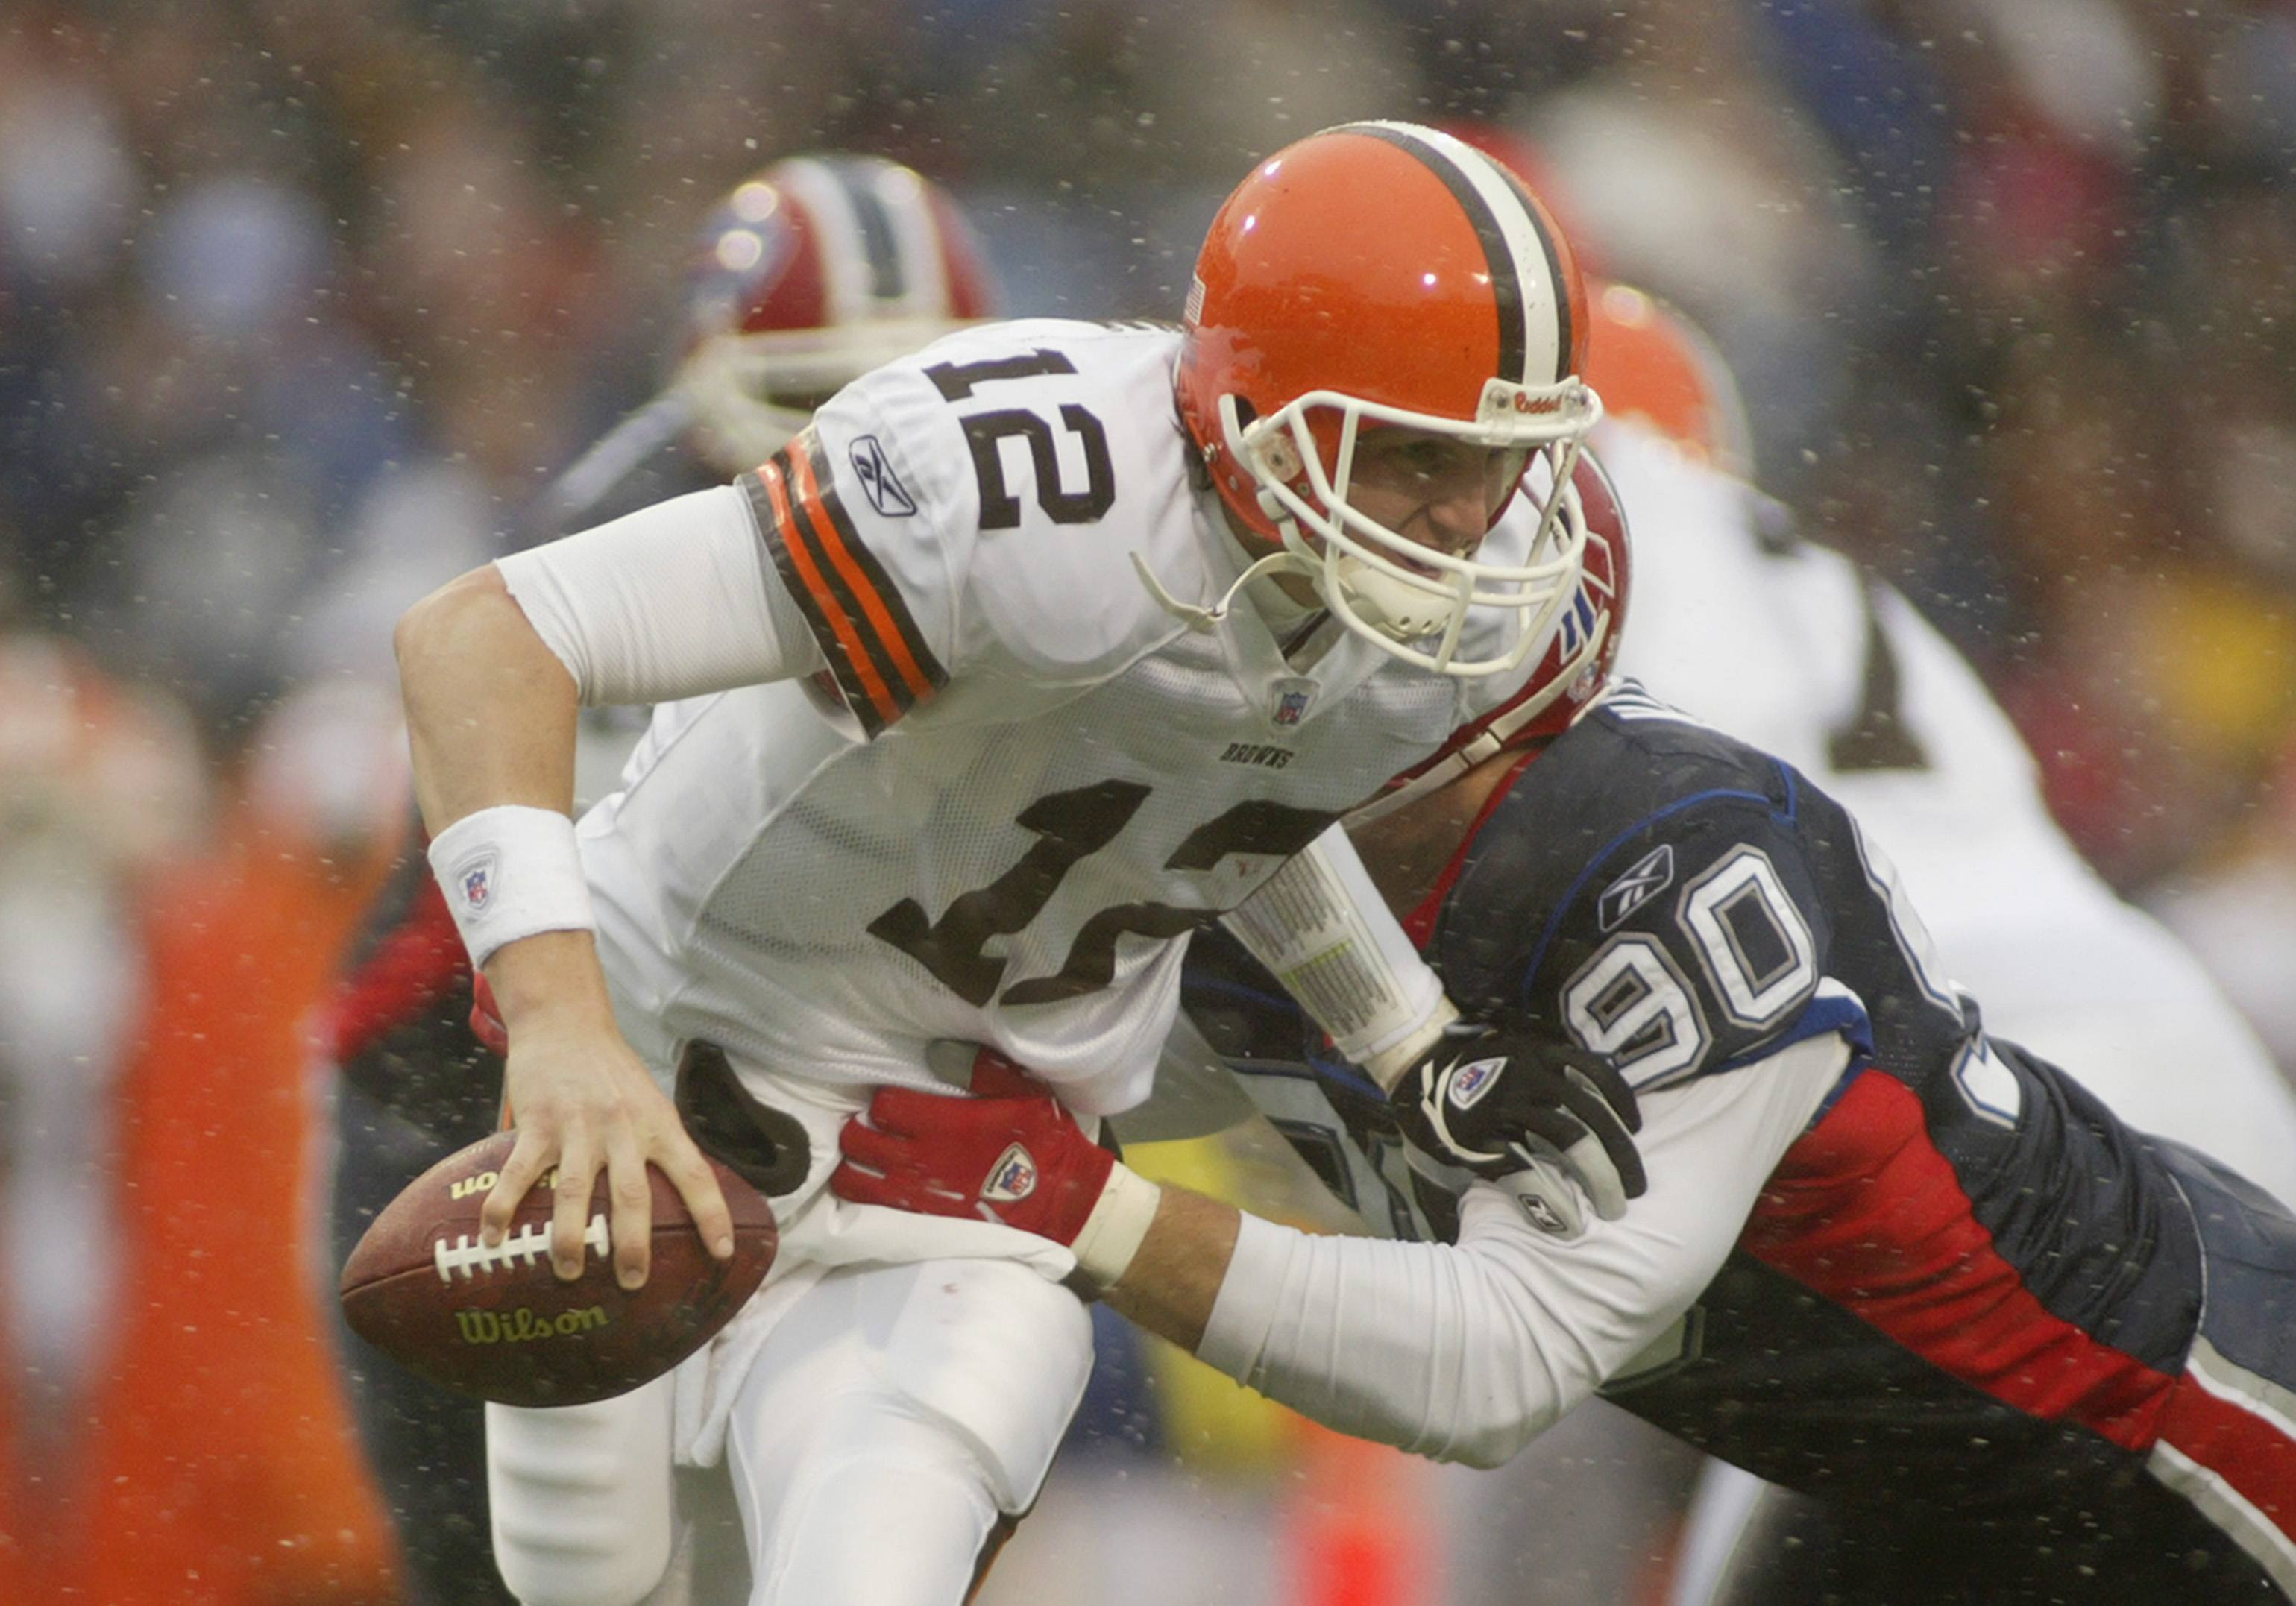 Quarterback Luke McCown of the Cleveland Browns is sacked by defensive end Chris Kelsay.